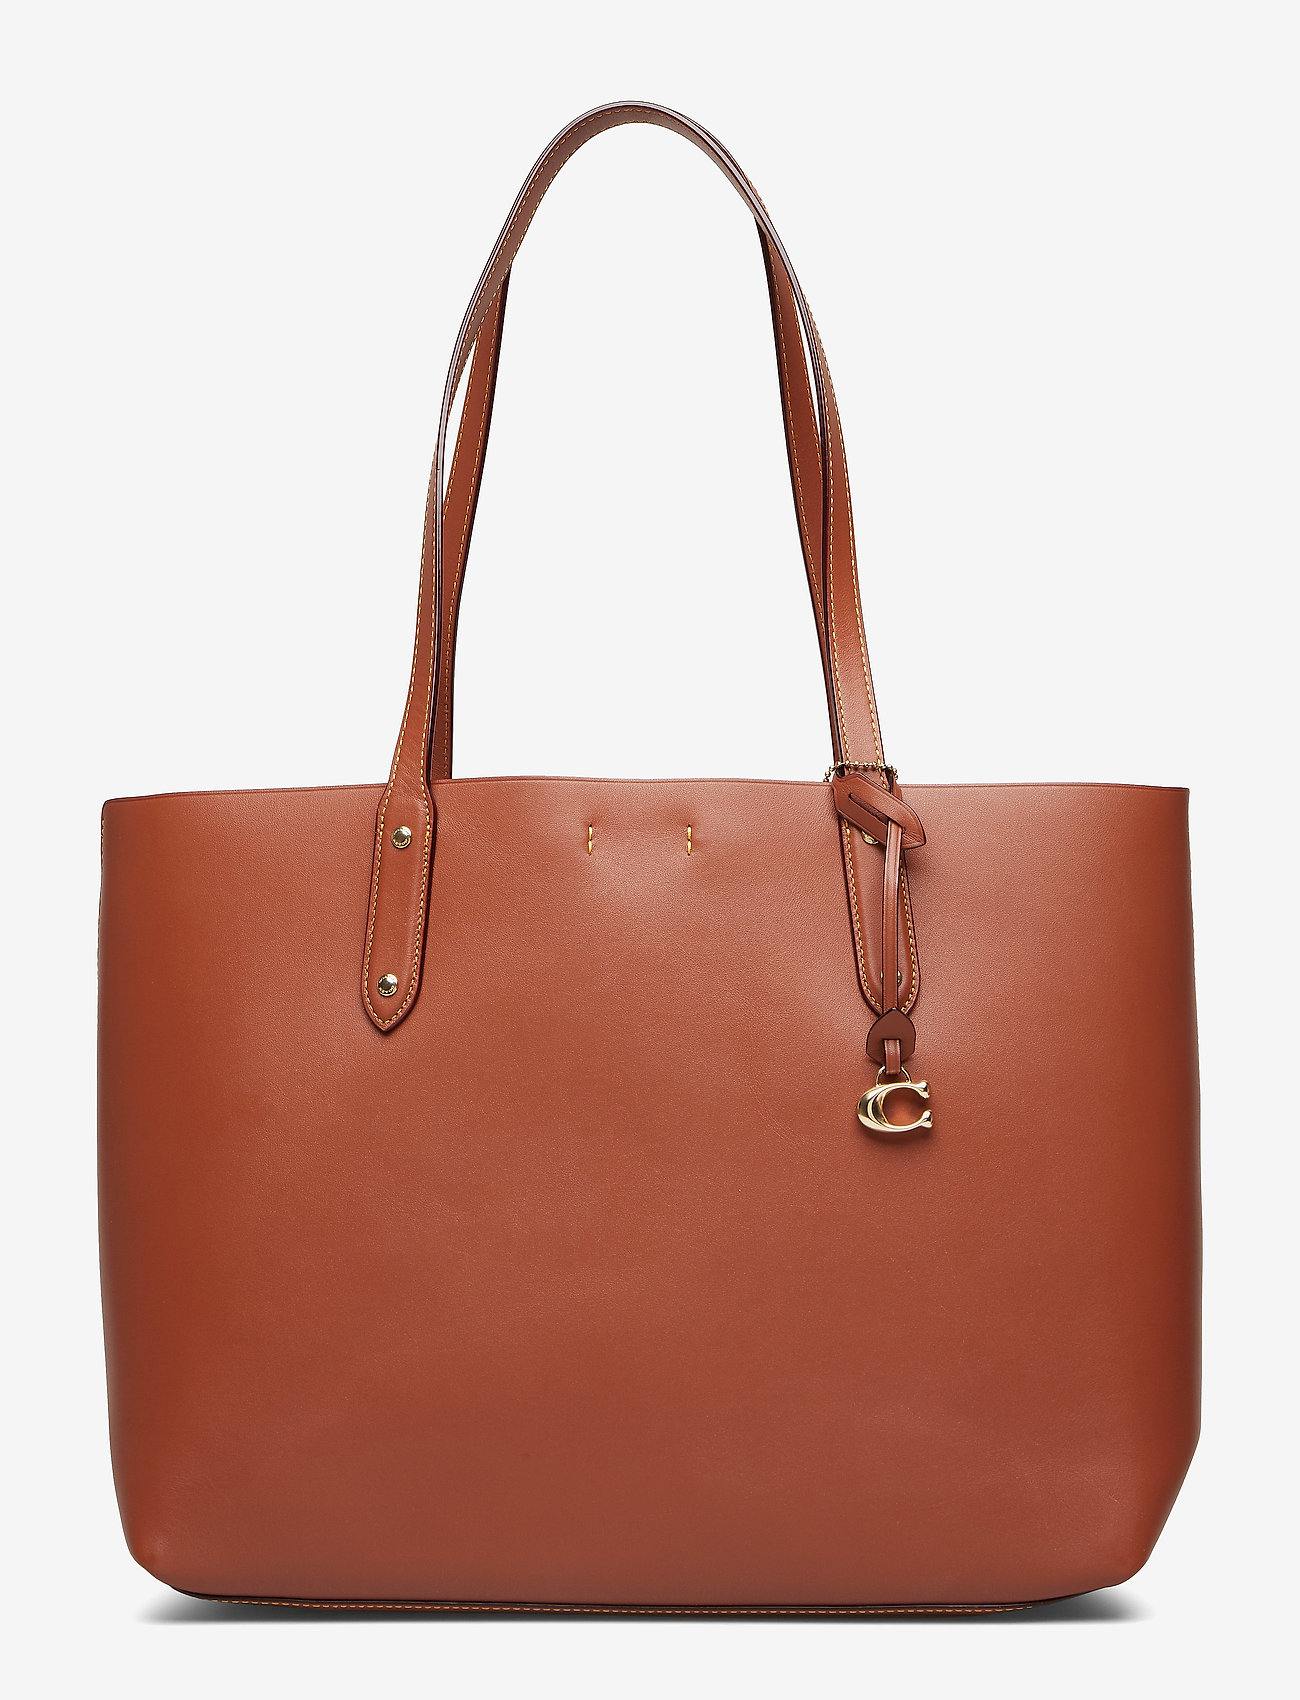 Coach - Refined Calf Leather Central Tote - fashion shoppers - gd/1941 saddle